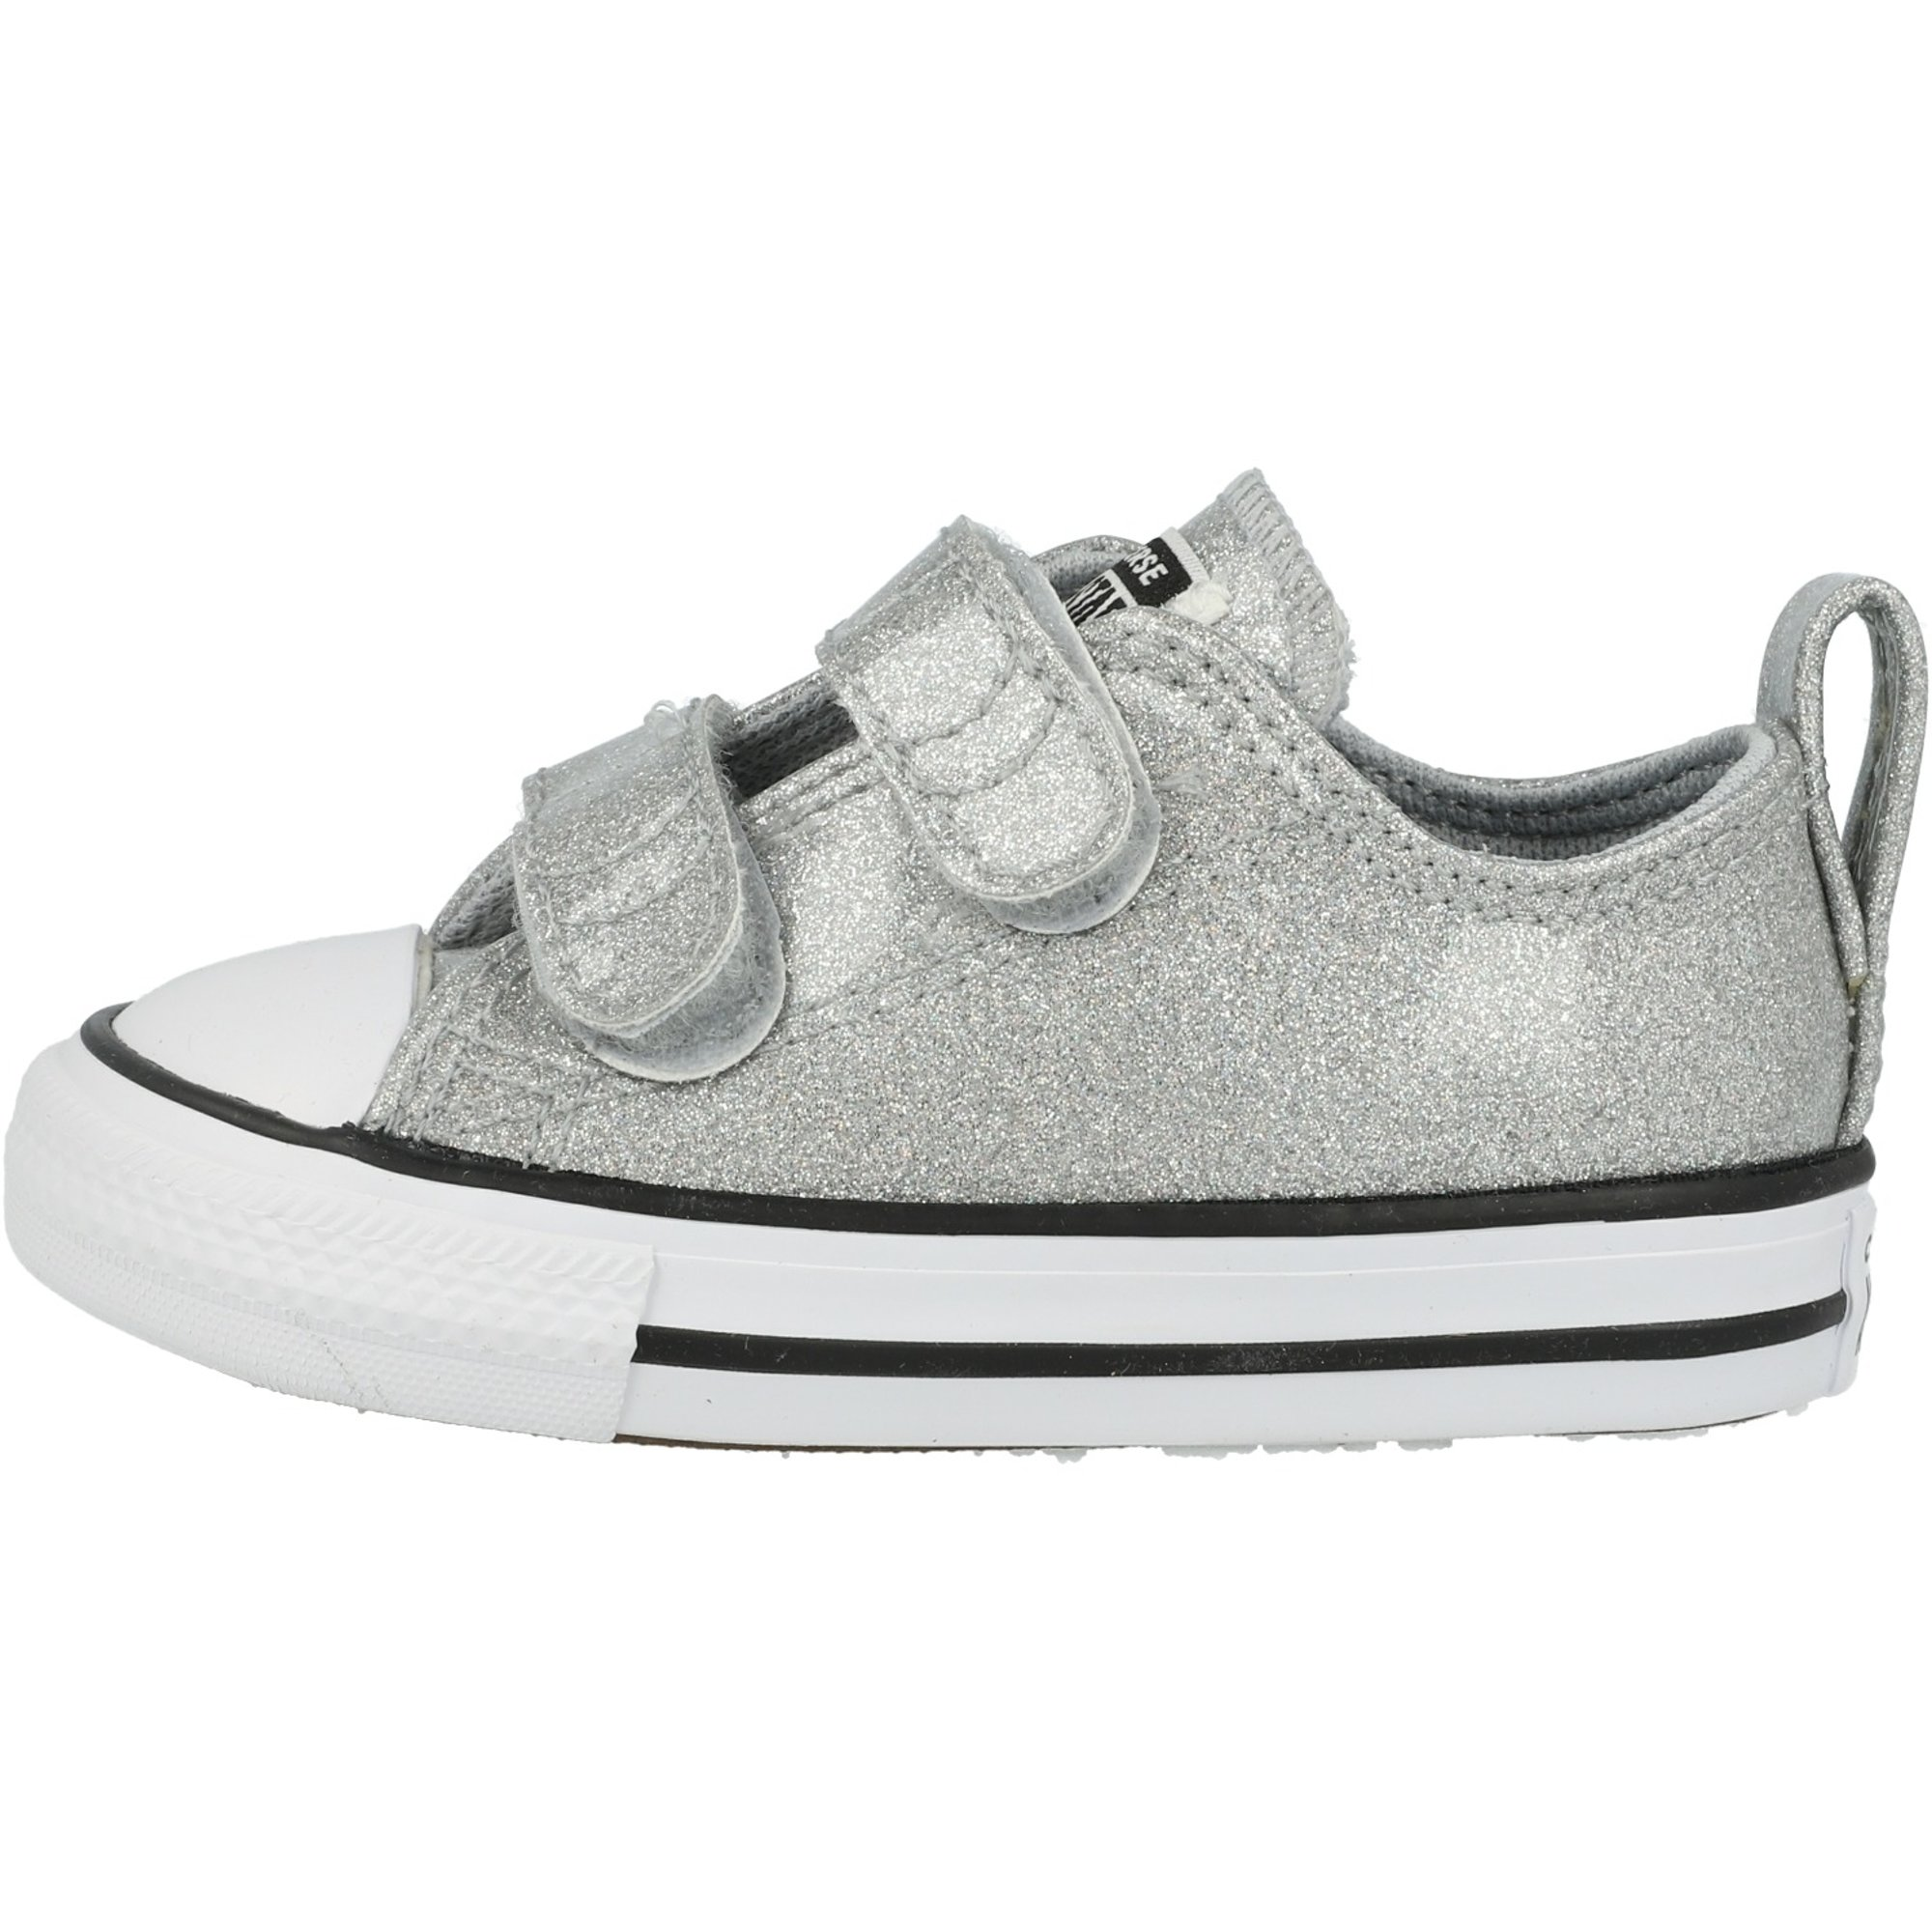 Converse Chuck Taylor All Star 2V Coated Glitter Wolf Grey/Black Synthetic Infant